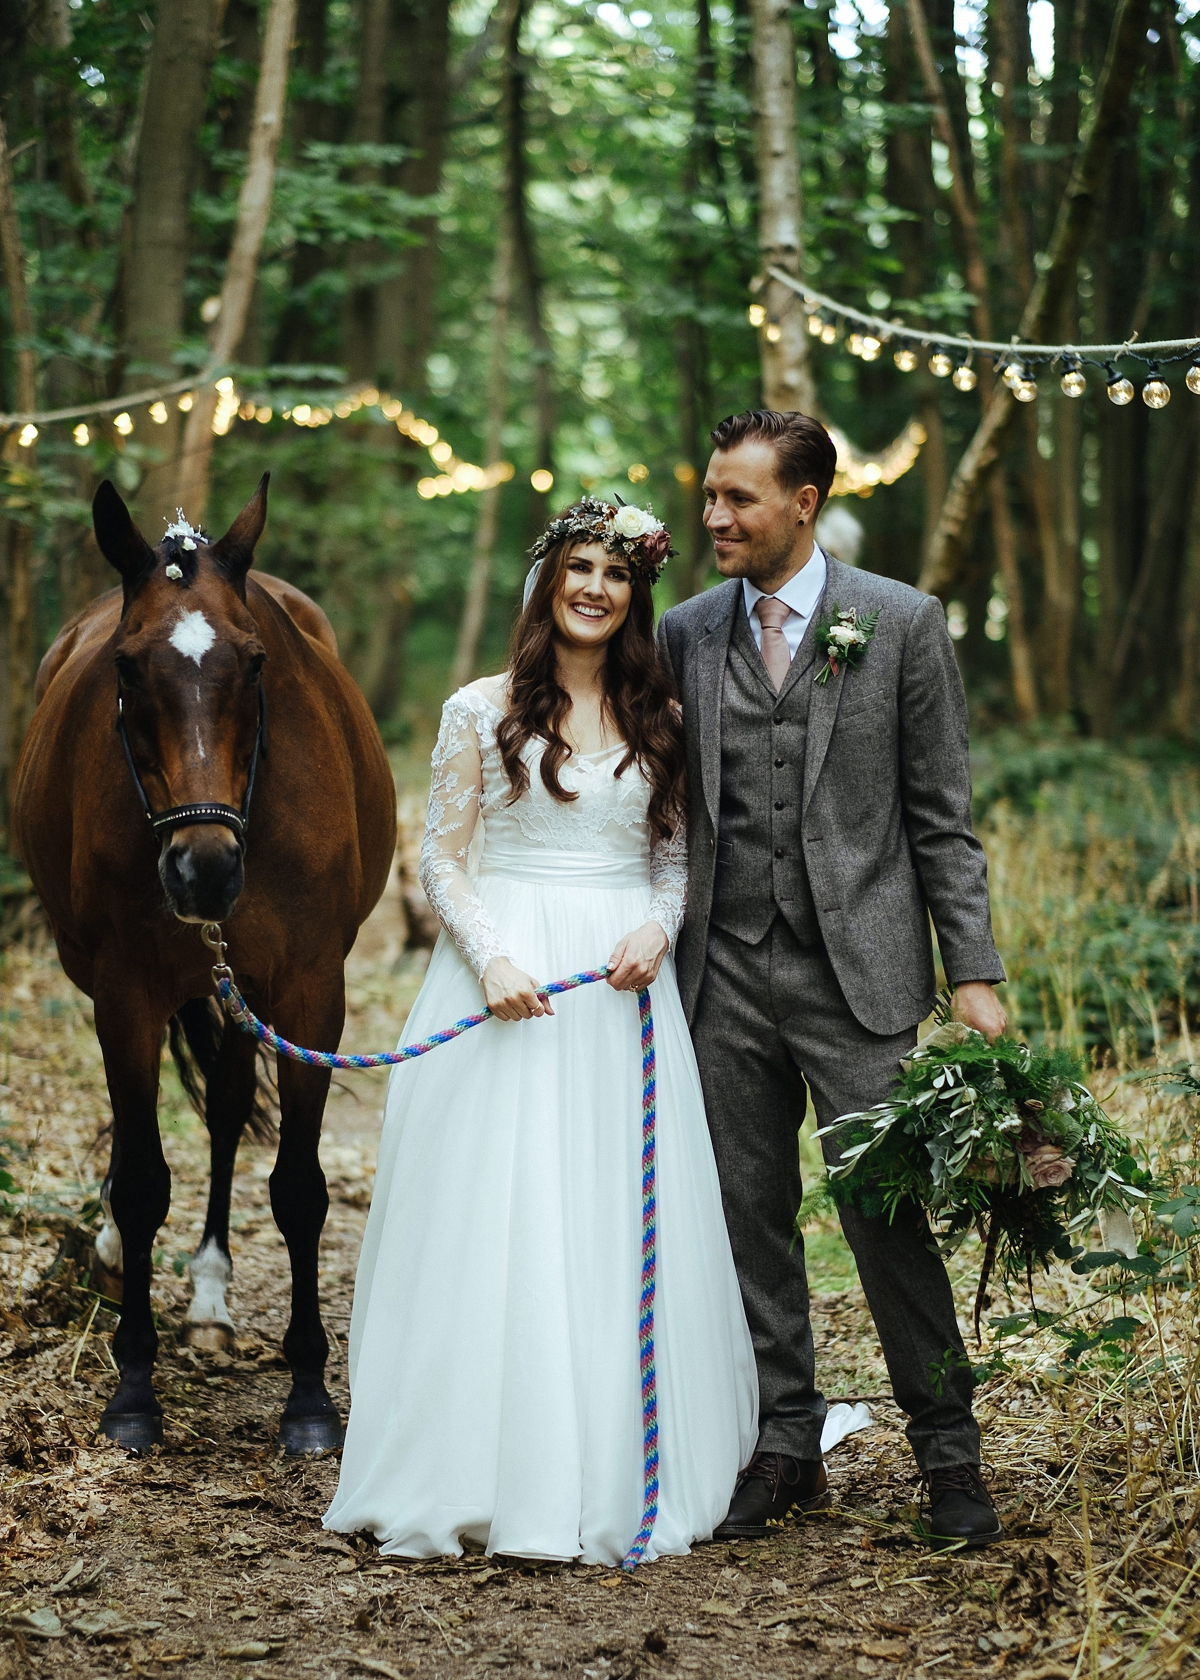 naomi-neoh-magical-woodland-wedding-42.jpg